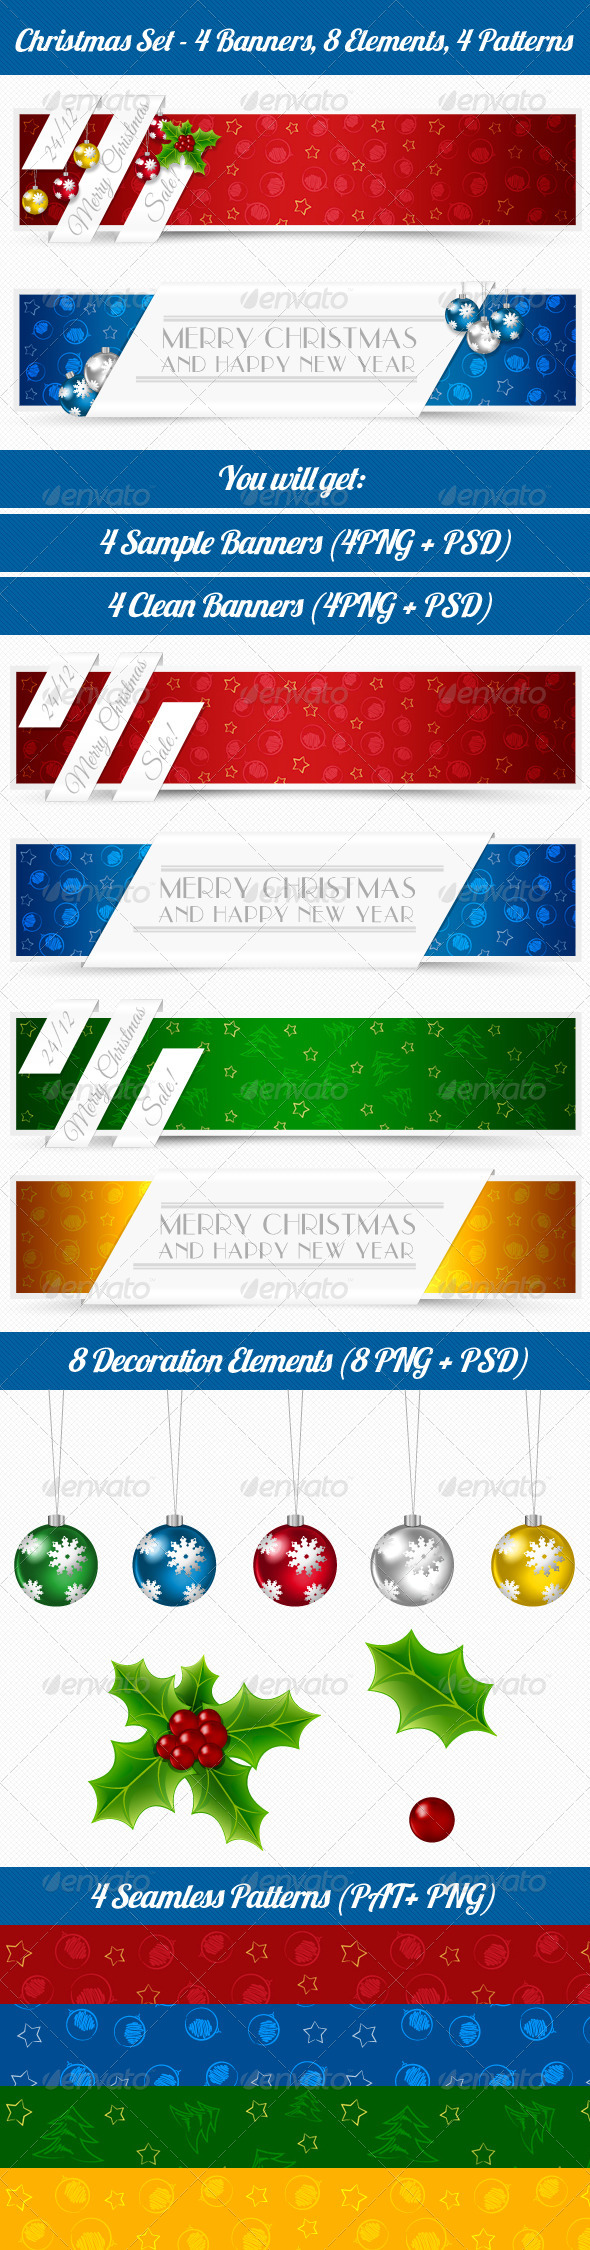 GraphicRiver Christmas Banners 5923802